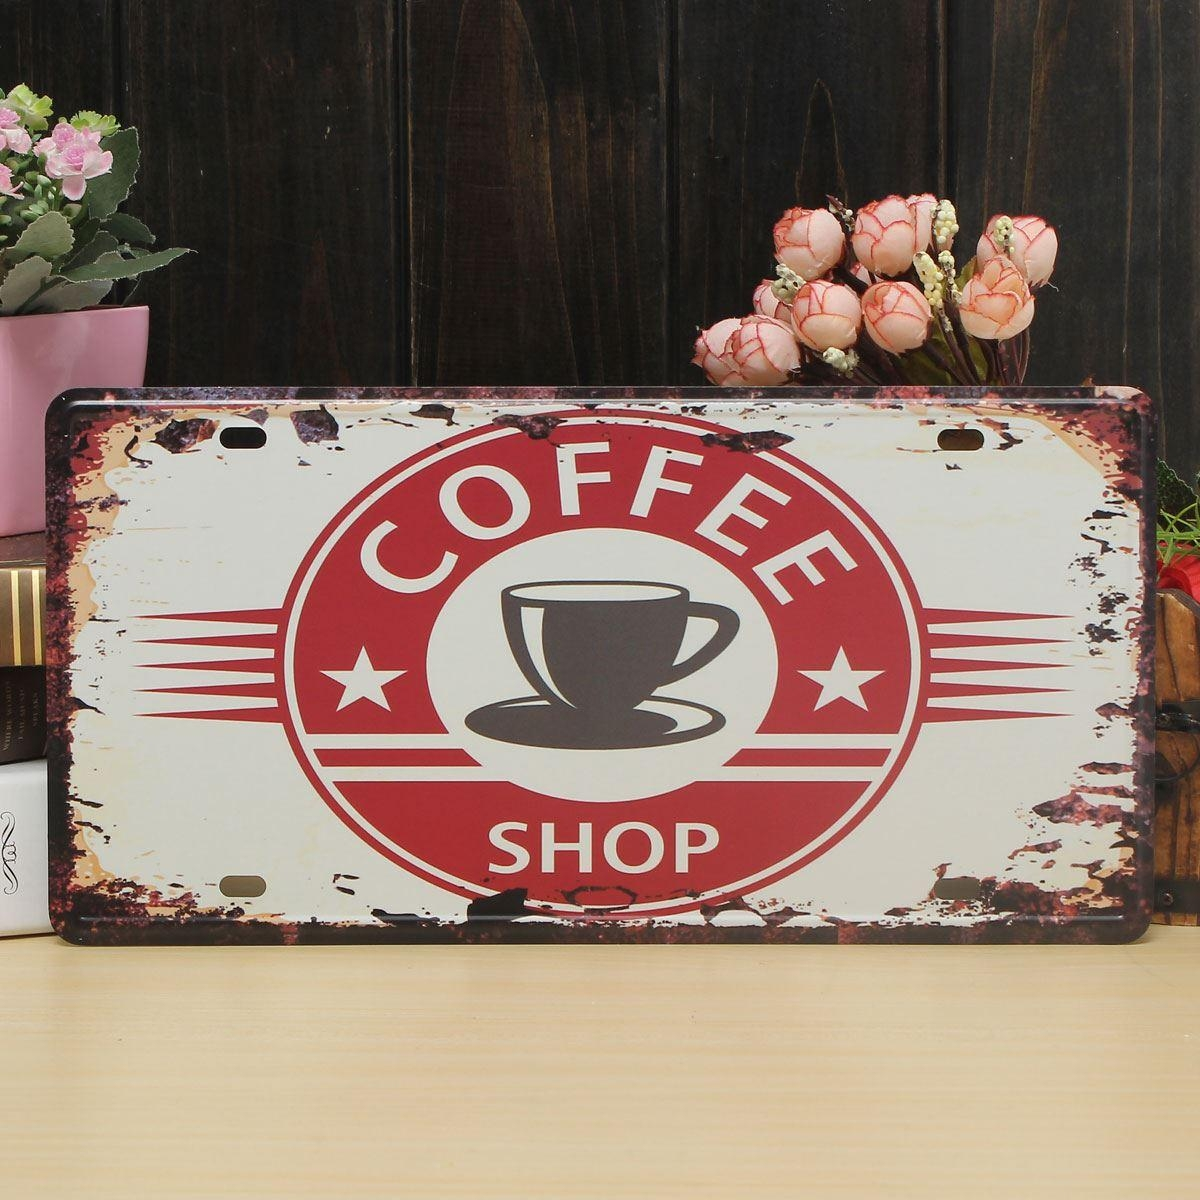 Coffee Theme Vintage Metal Sign The Fresh Brewed Coffee Wall Inside Metal Wall Art Coffee Theme (Image 9 of 20)